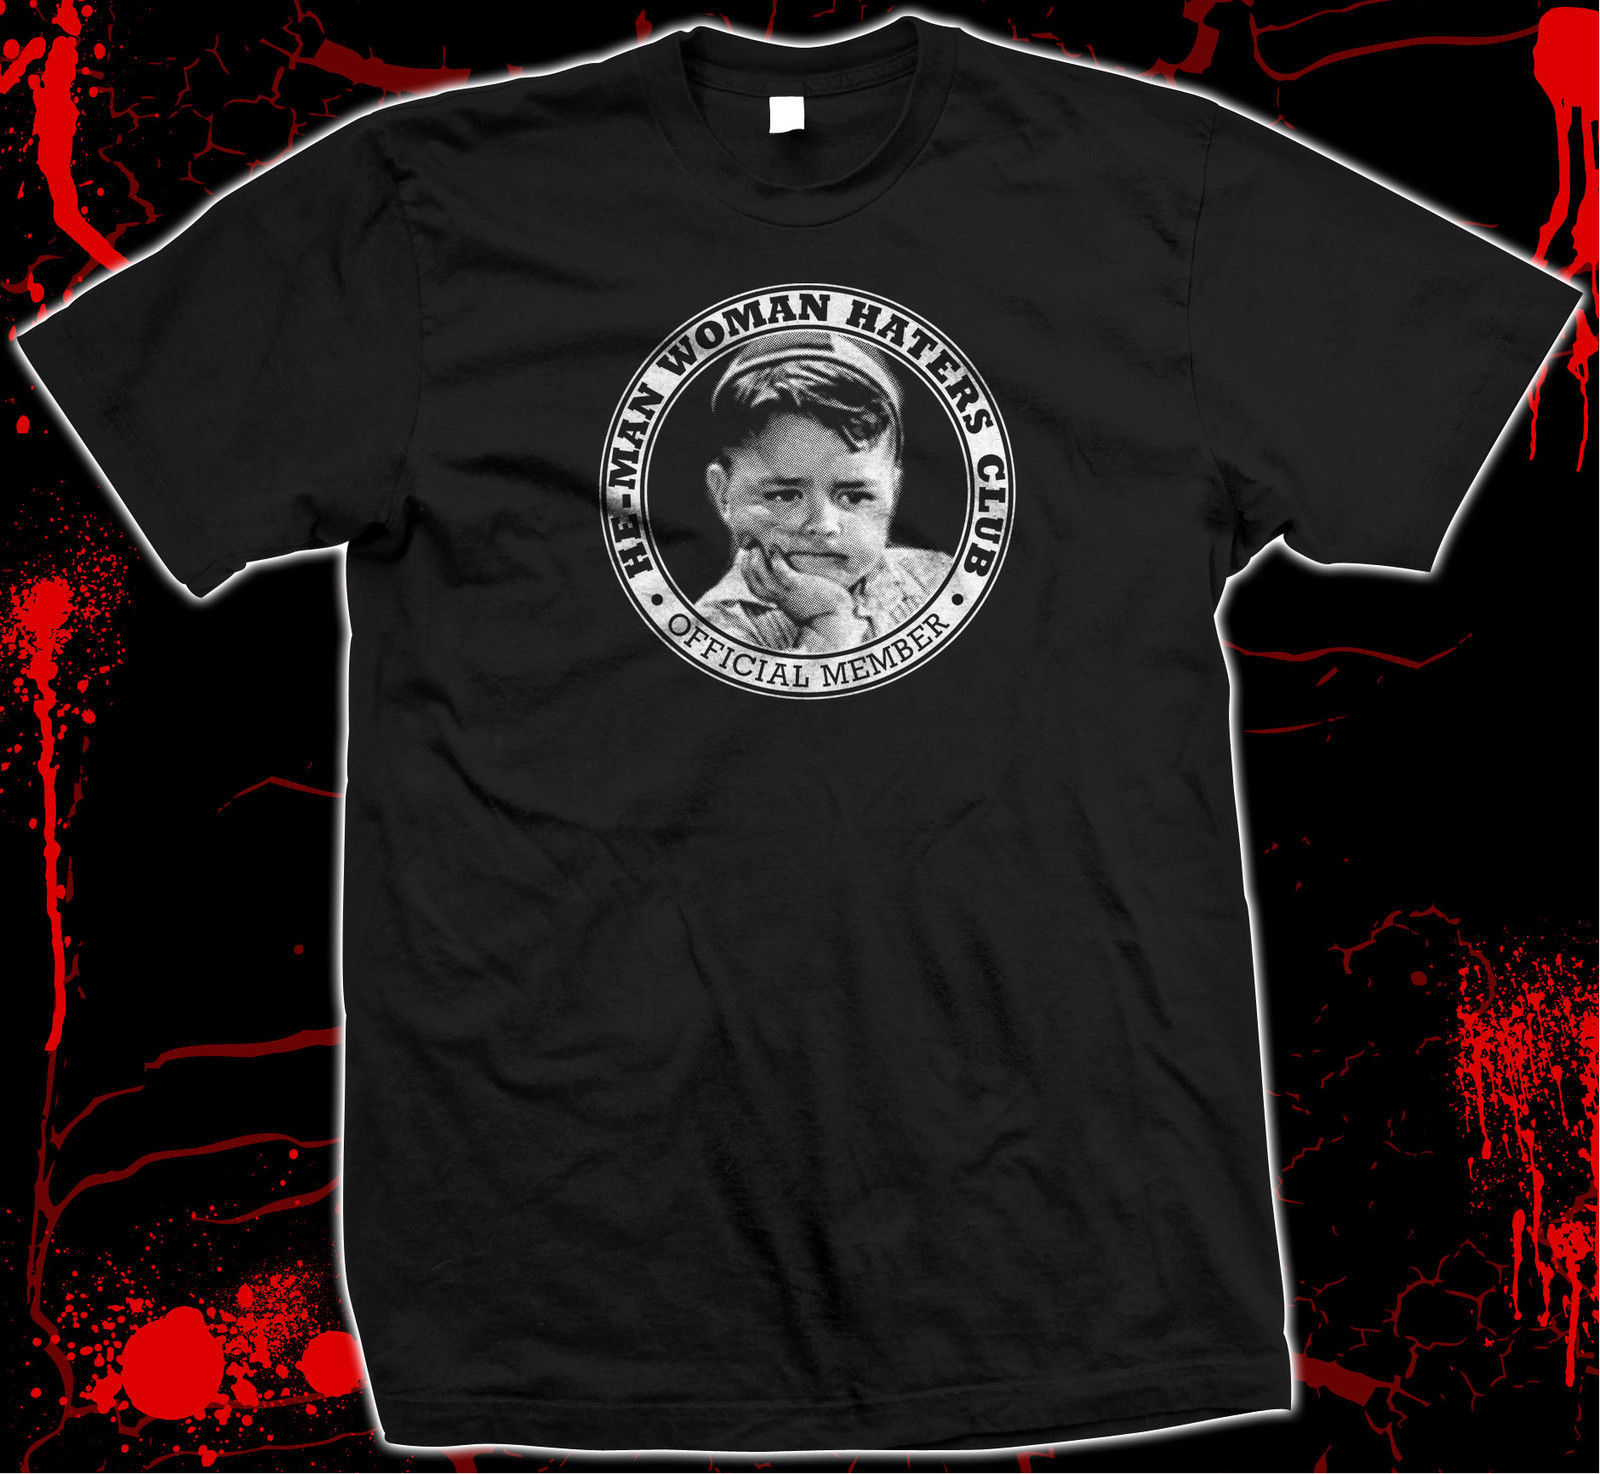 Our Gang - Spanky - He-Man Woman Haters Club - Hand-screened 100% cotton t-shirt for sale  USA